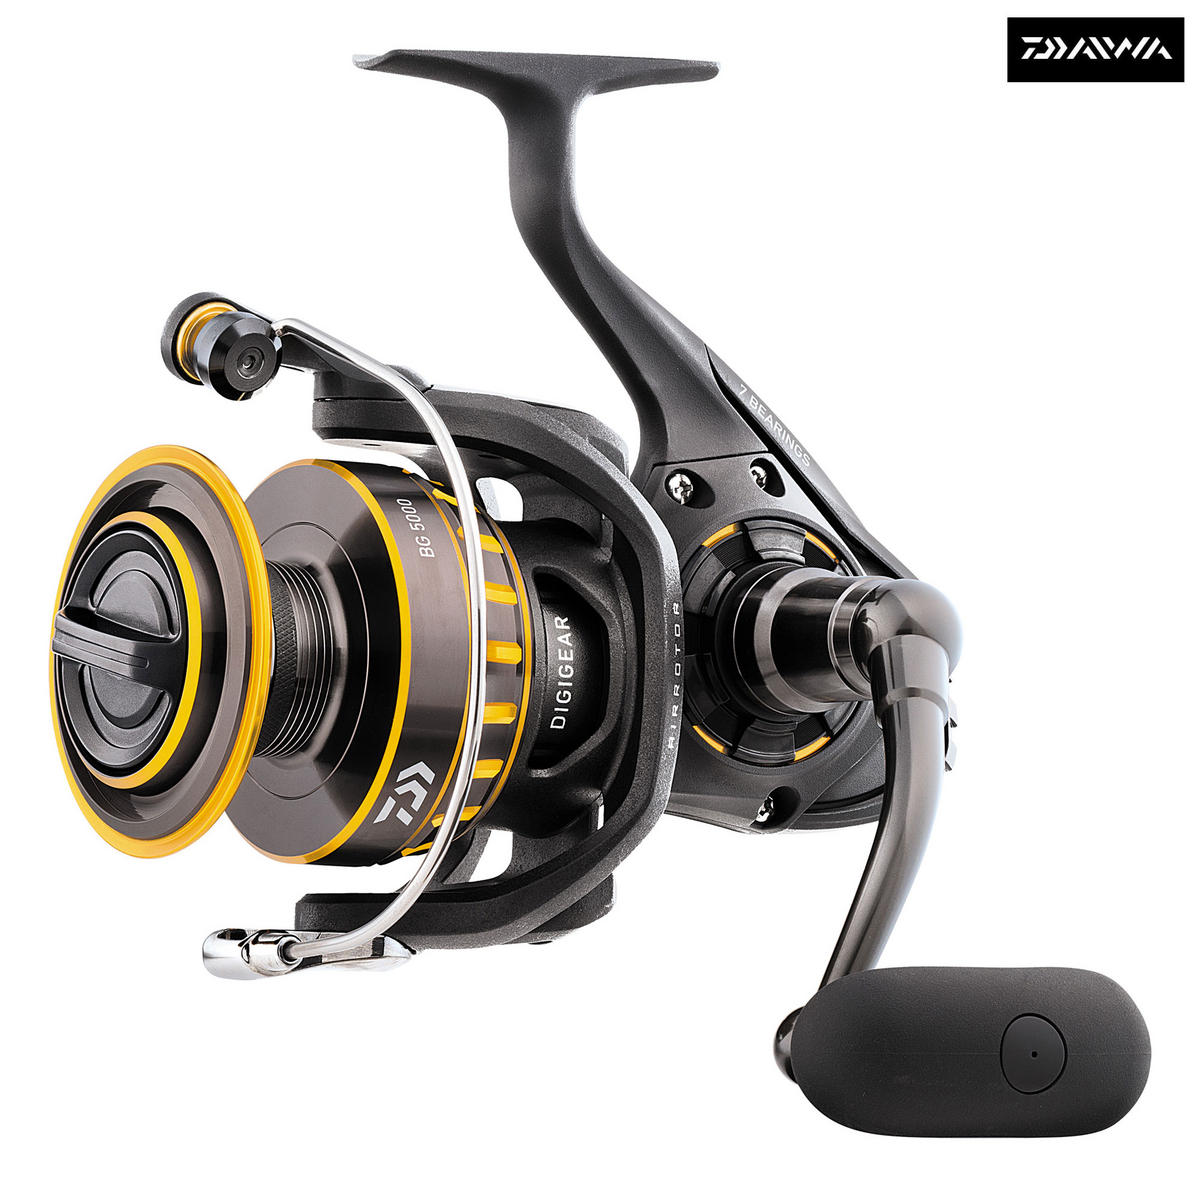 New Daiwa BG Spinning Reels - Freshwater / Saltwater All Sizes